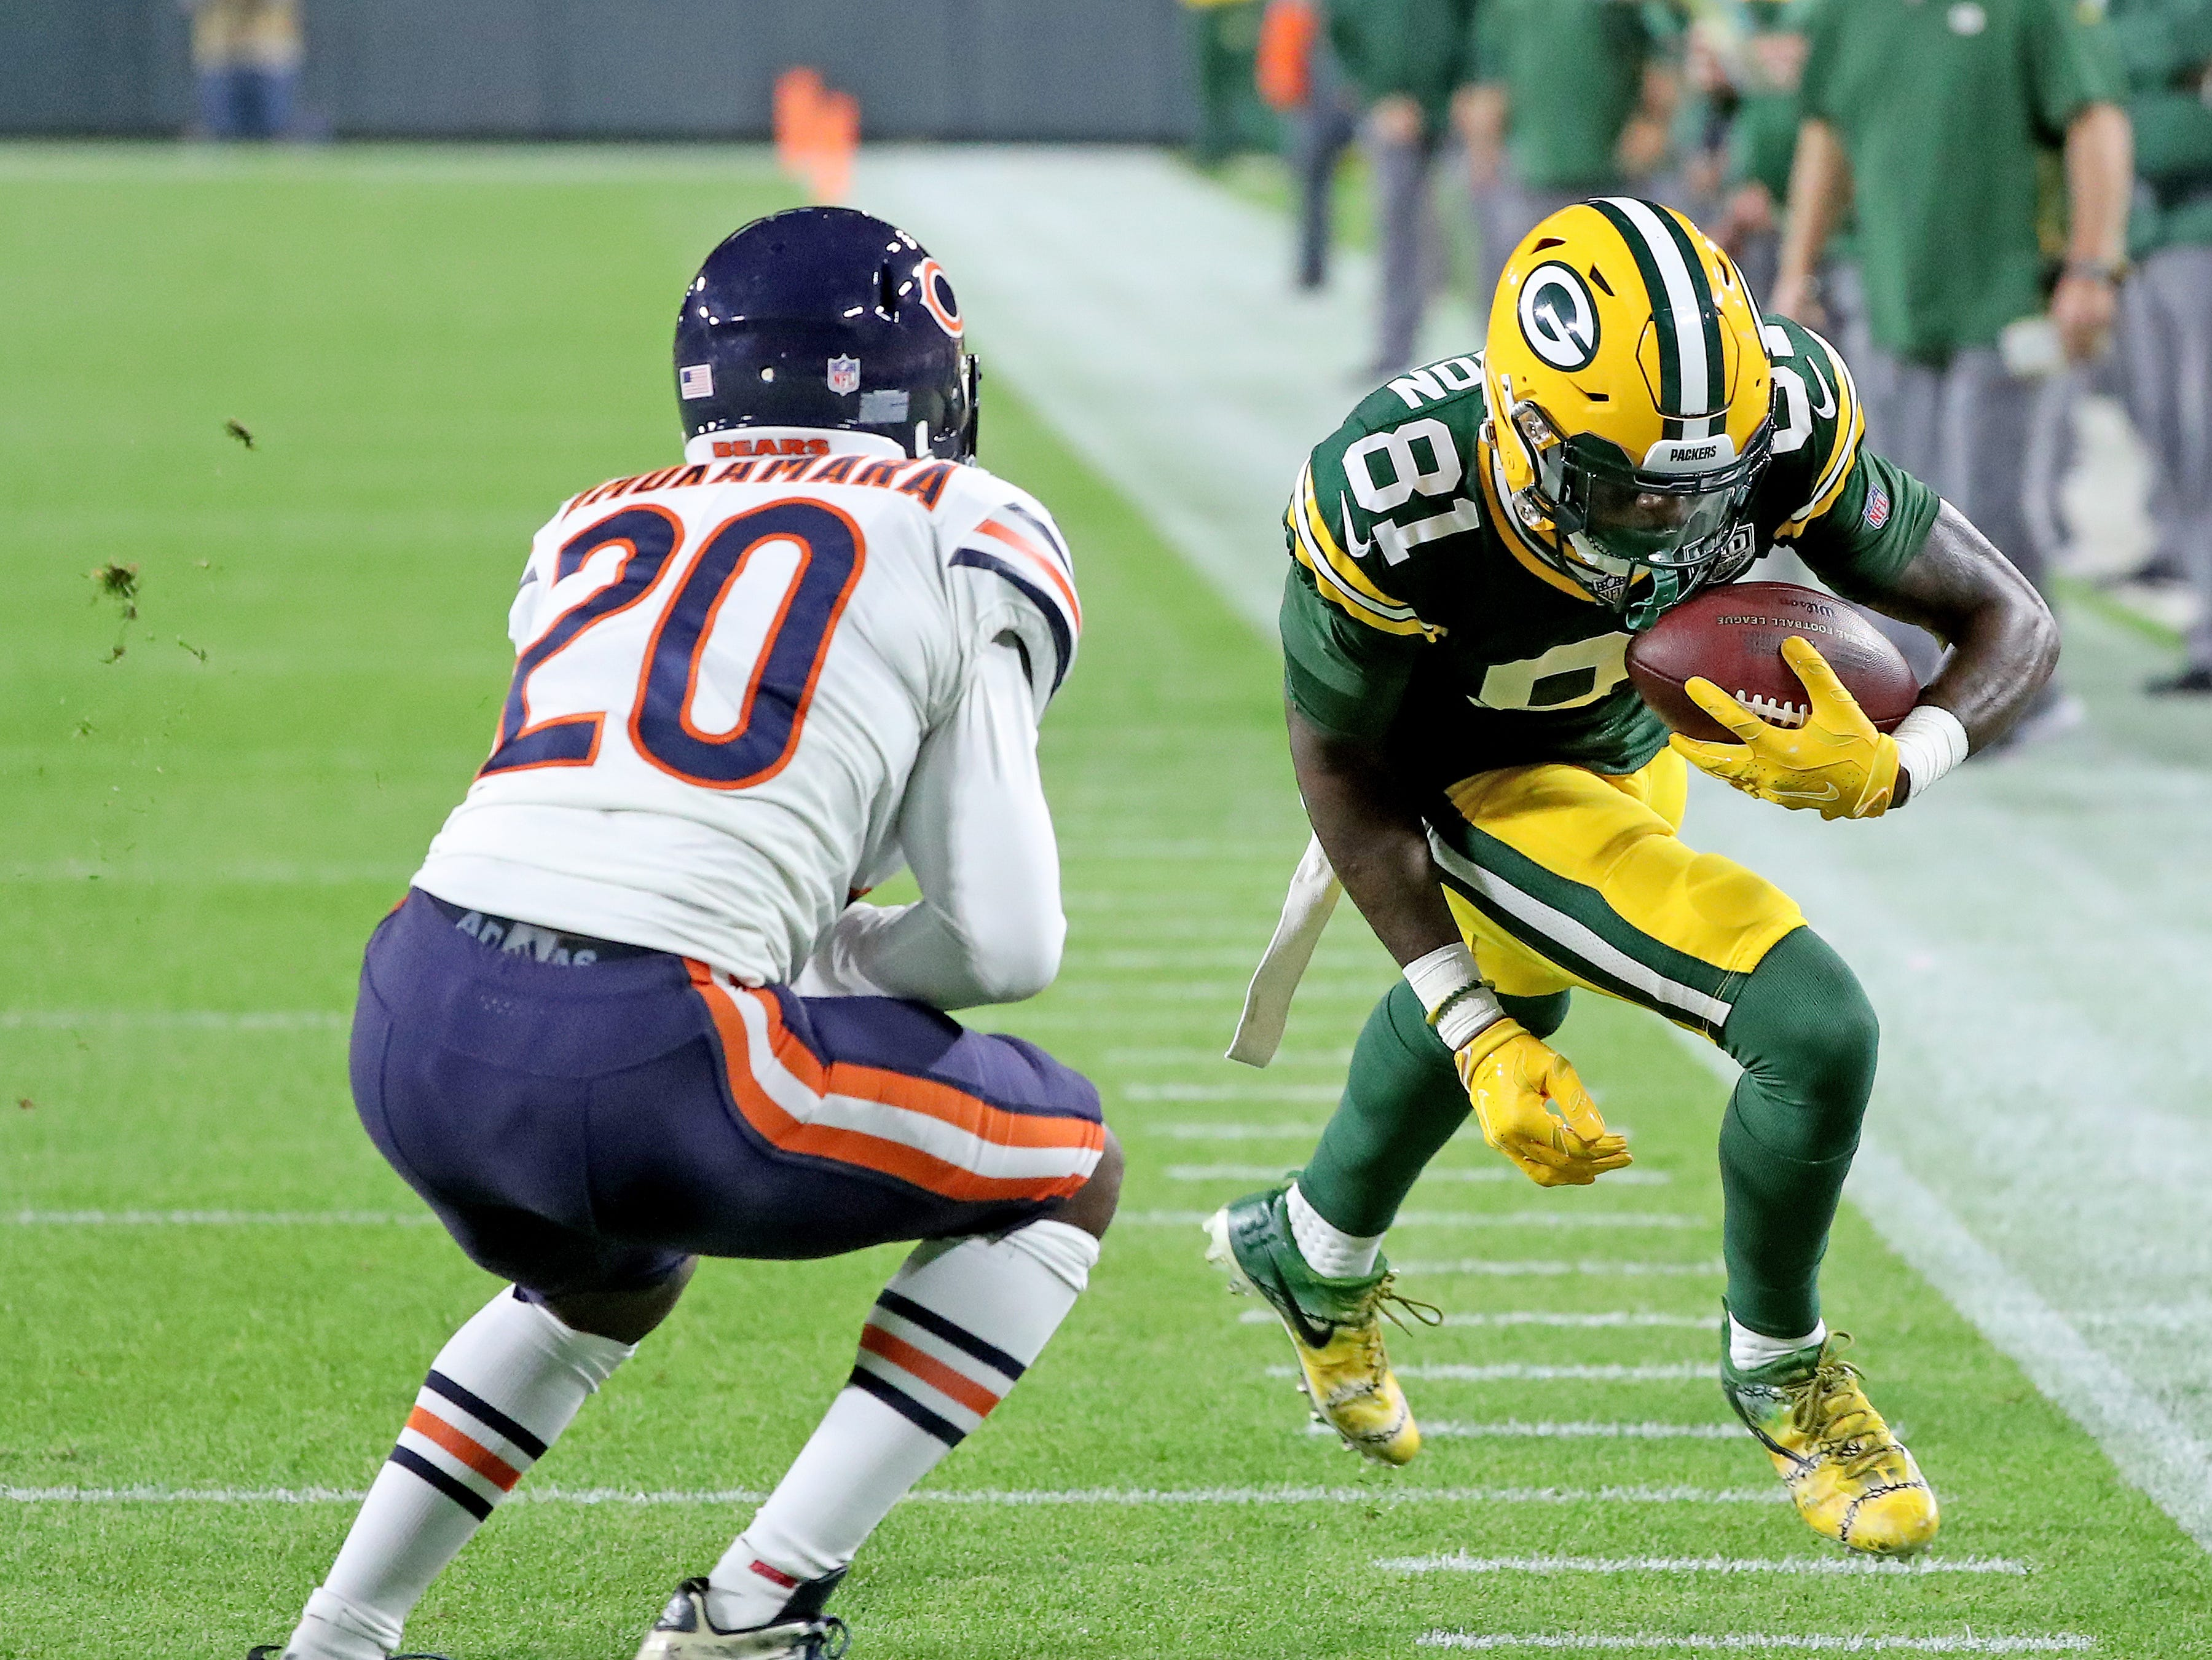 Green Bay Packers wide receiver Geronimo Allison (81) against the Chicago Bears Sunday, September 9, 2018 at Lambeau Field in Green Bay, Wis.